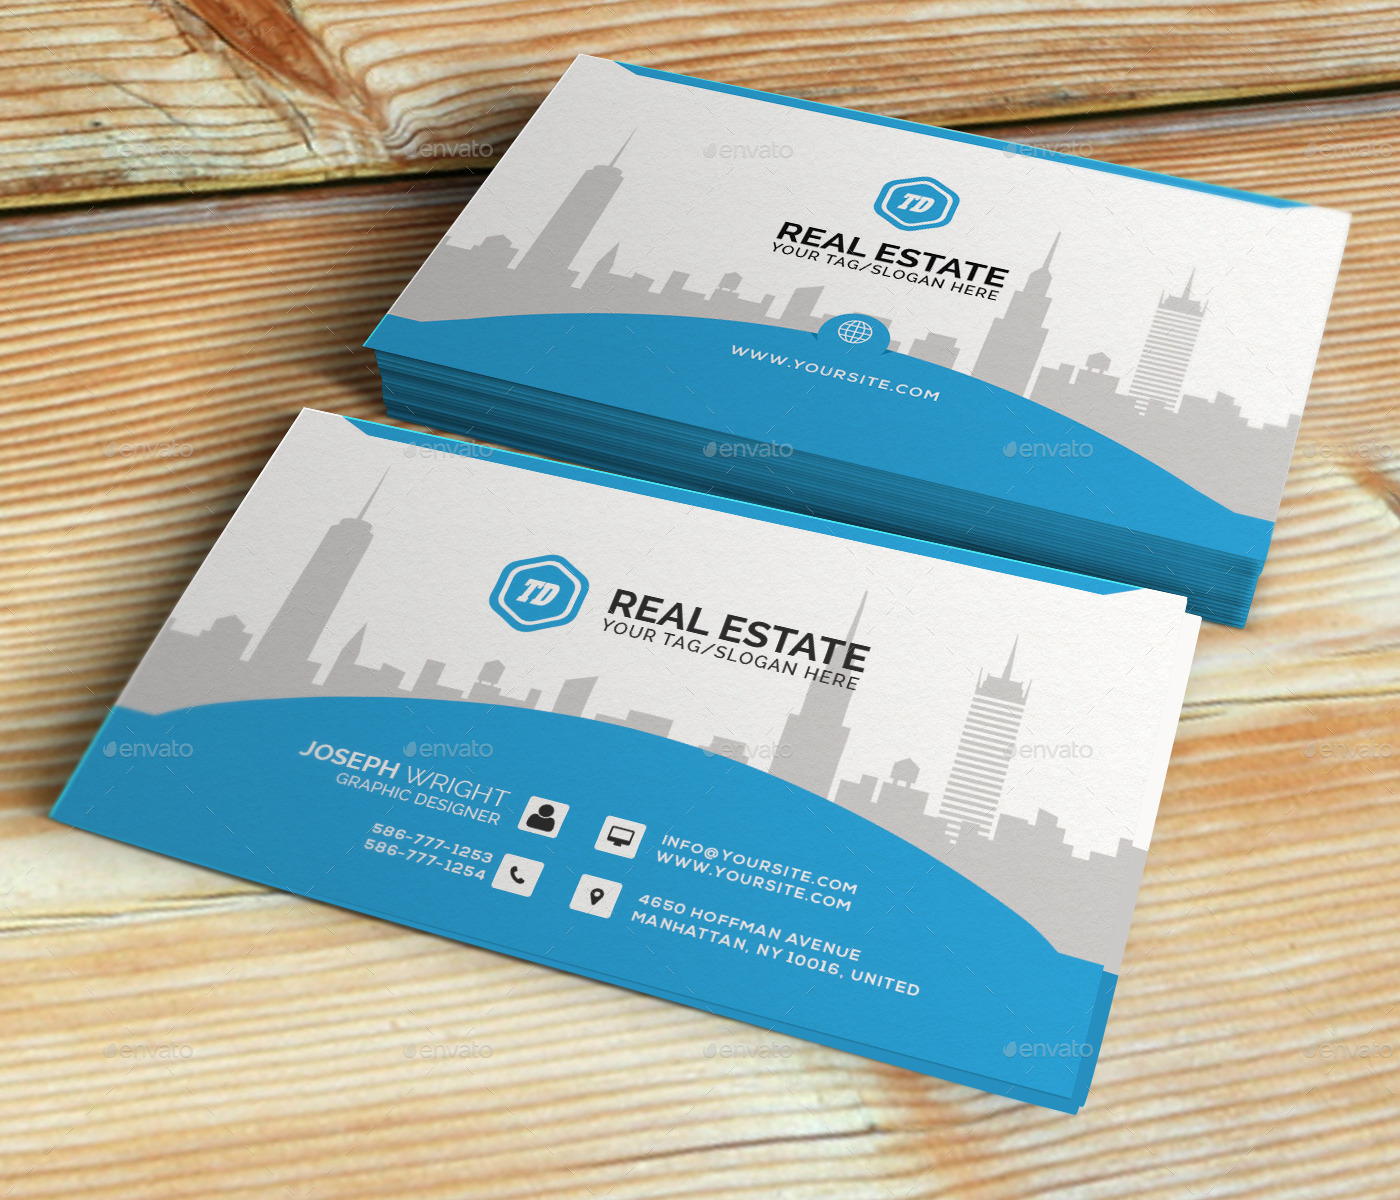 Real estate business card template by themedesk graphicriver real estate business card template corporate business cards previewpreview 00g previewpreview 01g accmission Images